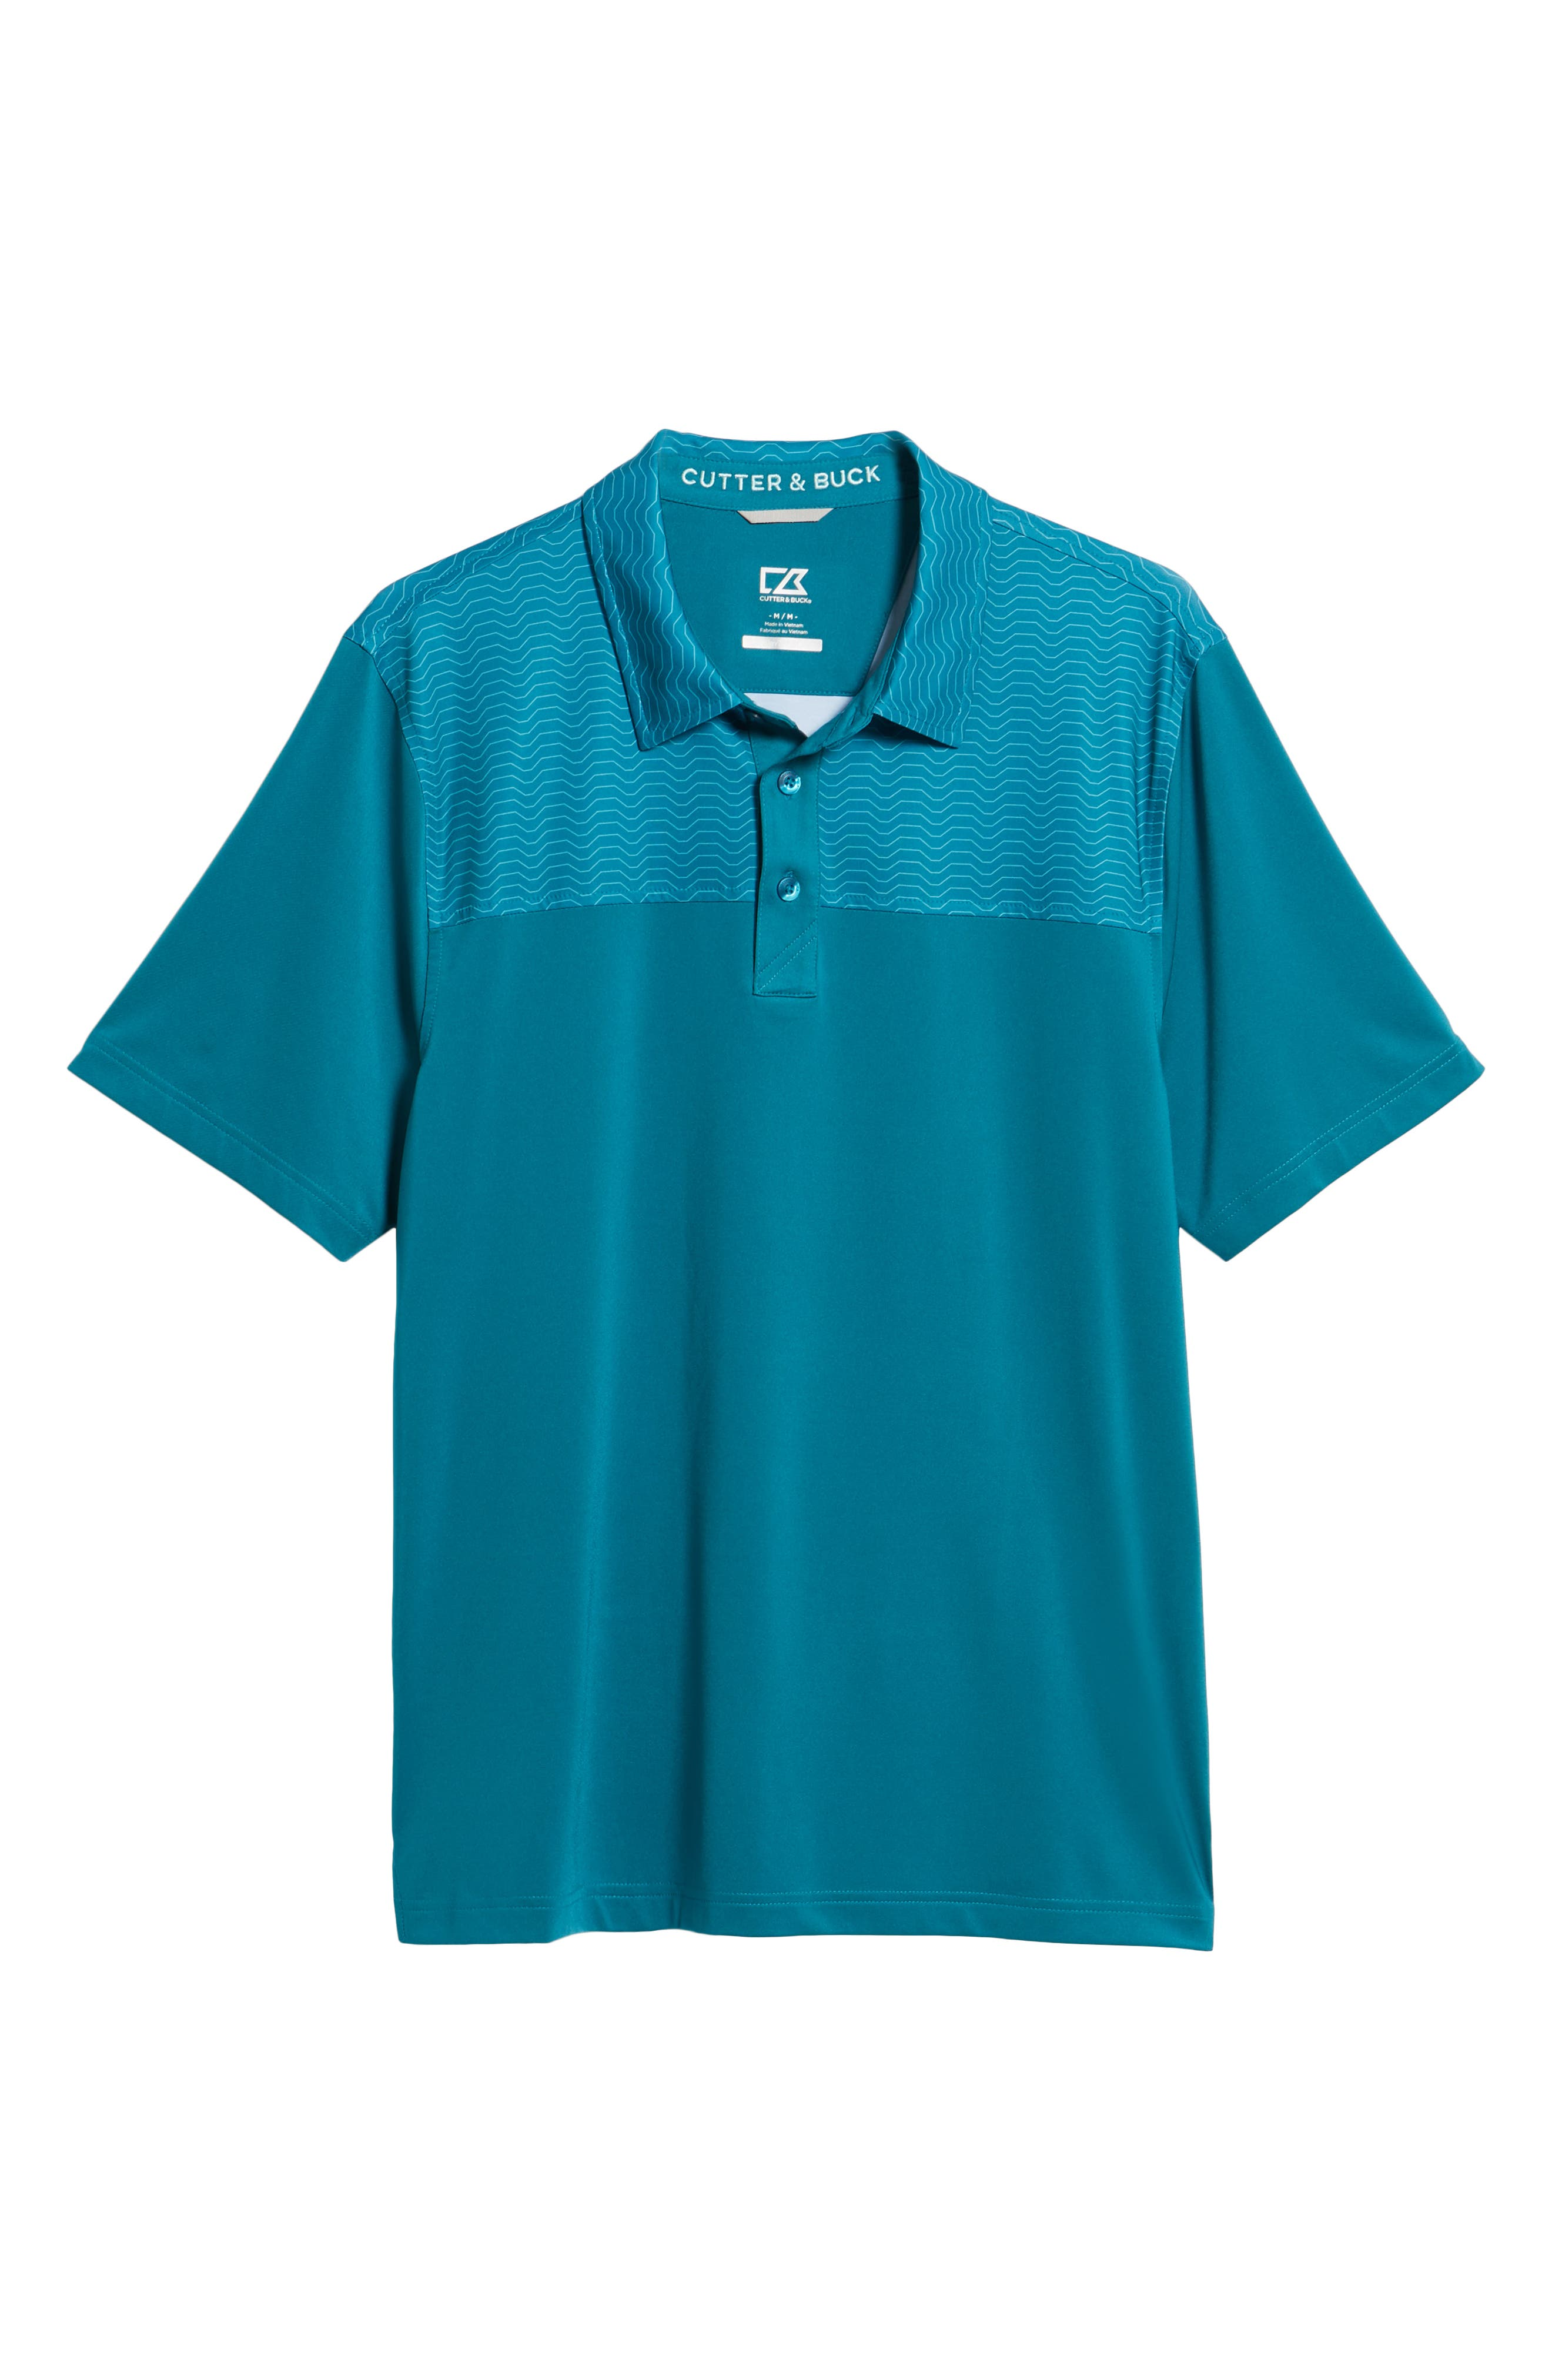 CUTTER & BUCK,                             Kevin DryTec Polo,                             Alternate thumbnail 6, color,                             400